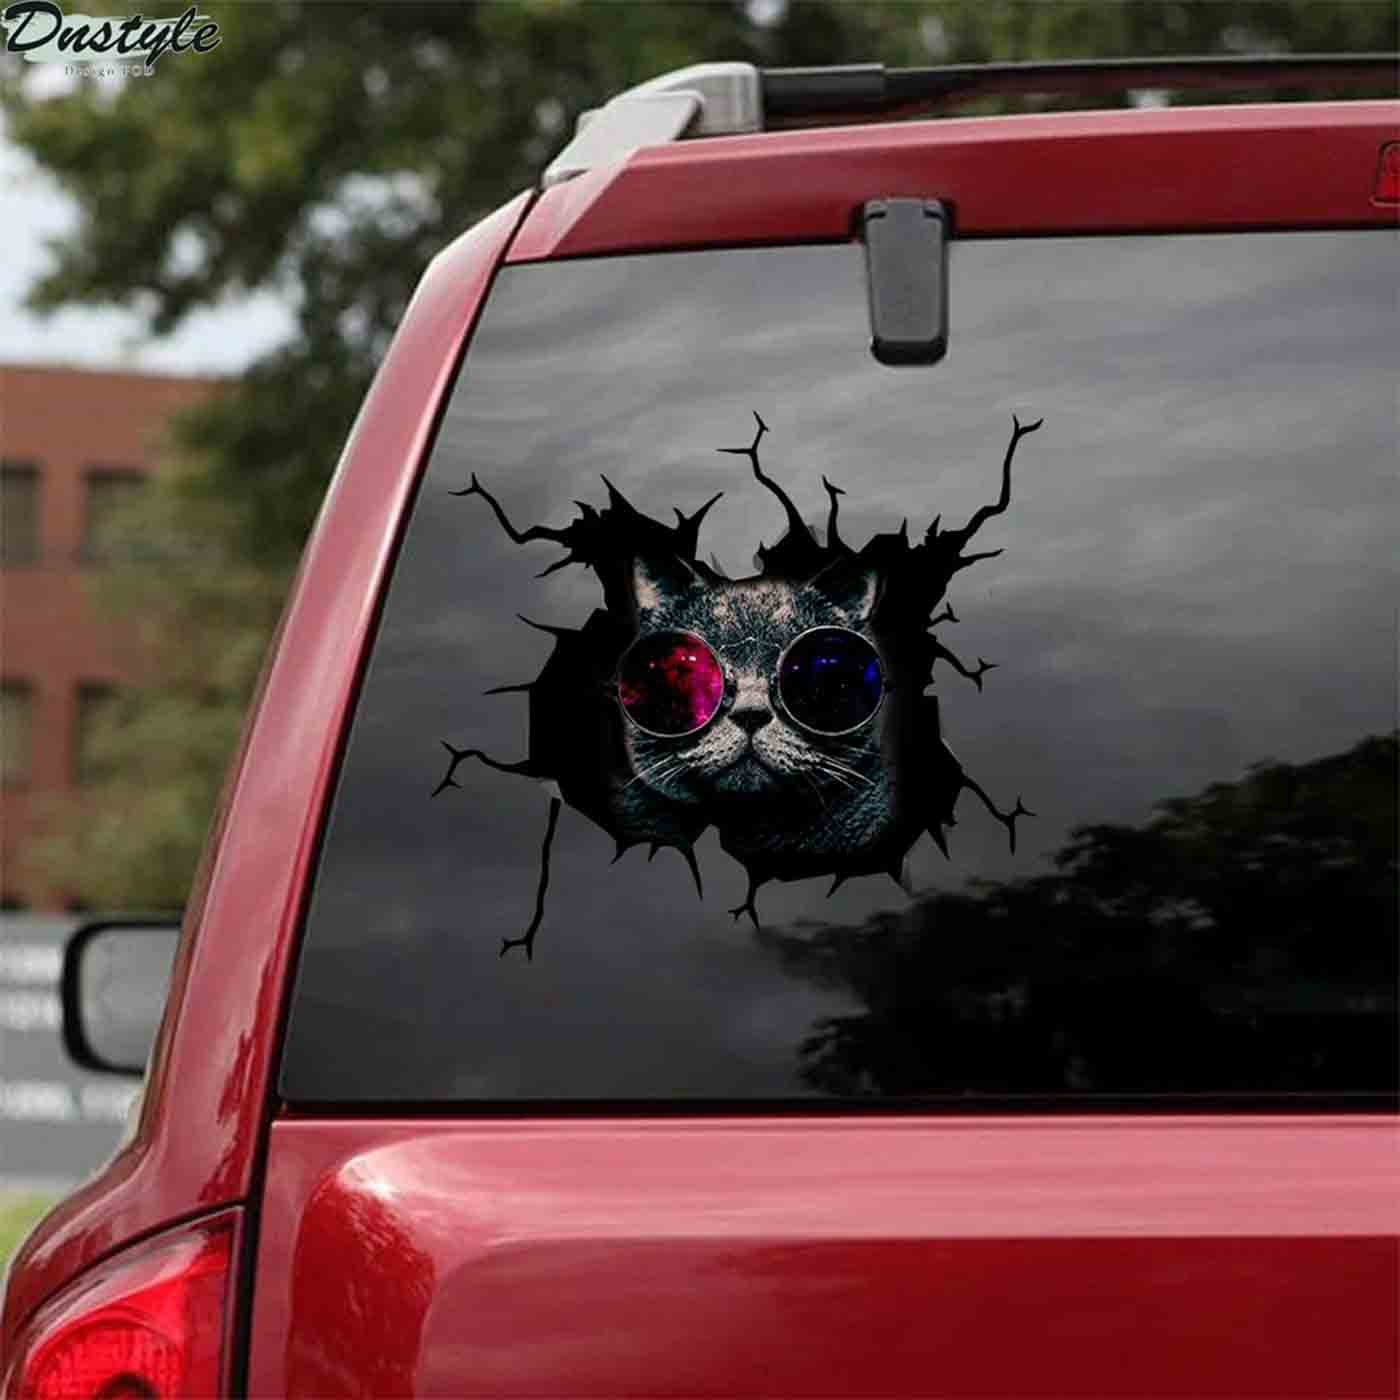 Black cats with glasses car decal sticker 2